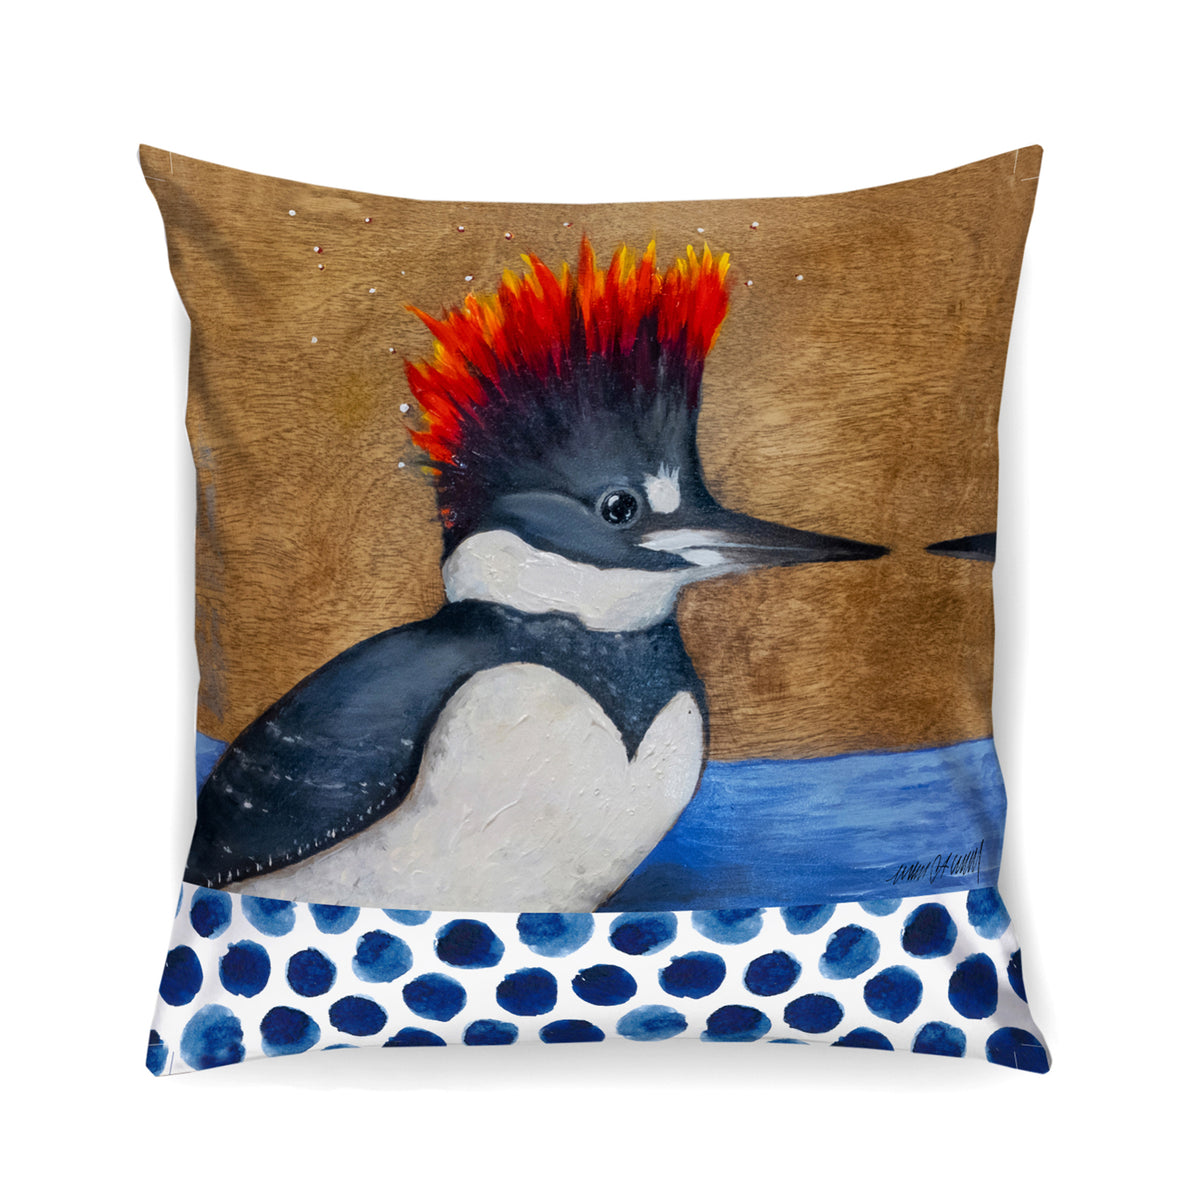 Kingfisher Pillow Arin Waddell Art Off The Wall